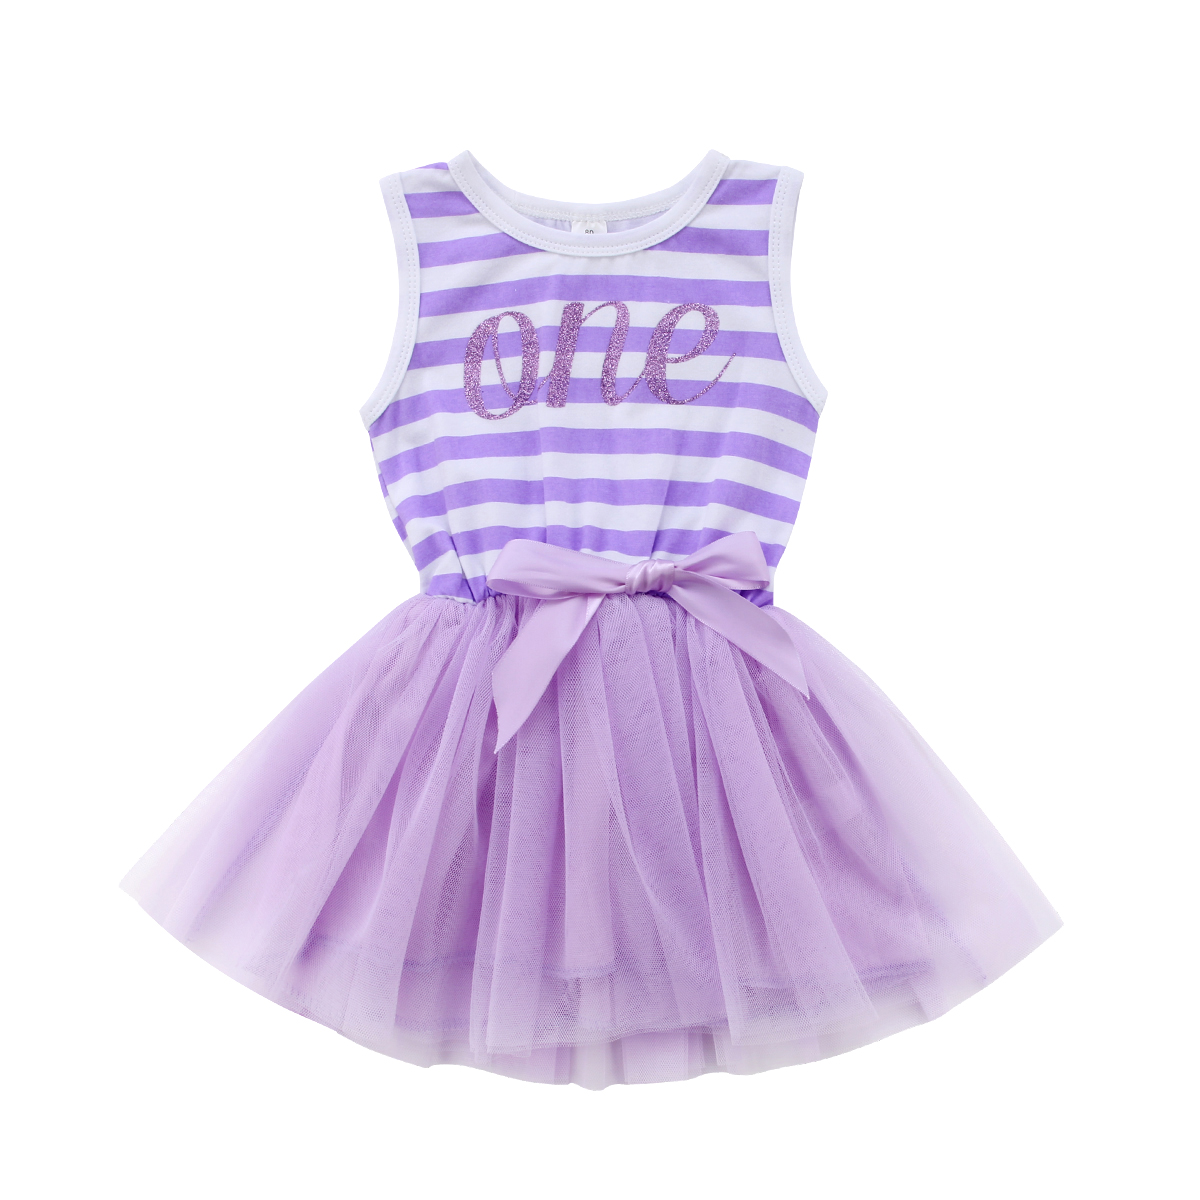 70a409f18fe Purple Party Dress For Baby Girl - Gomes Weine AG